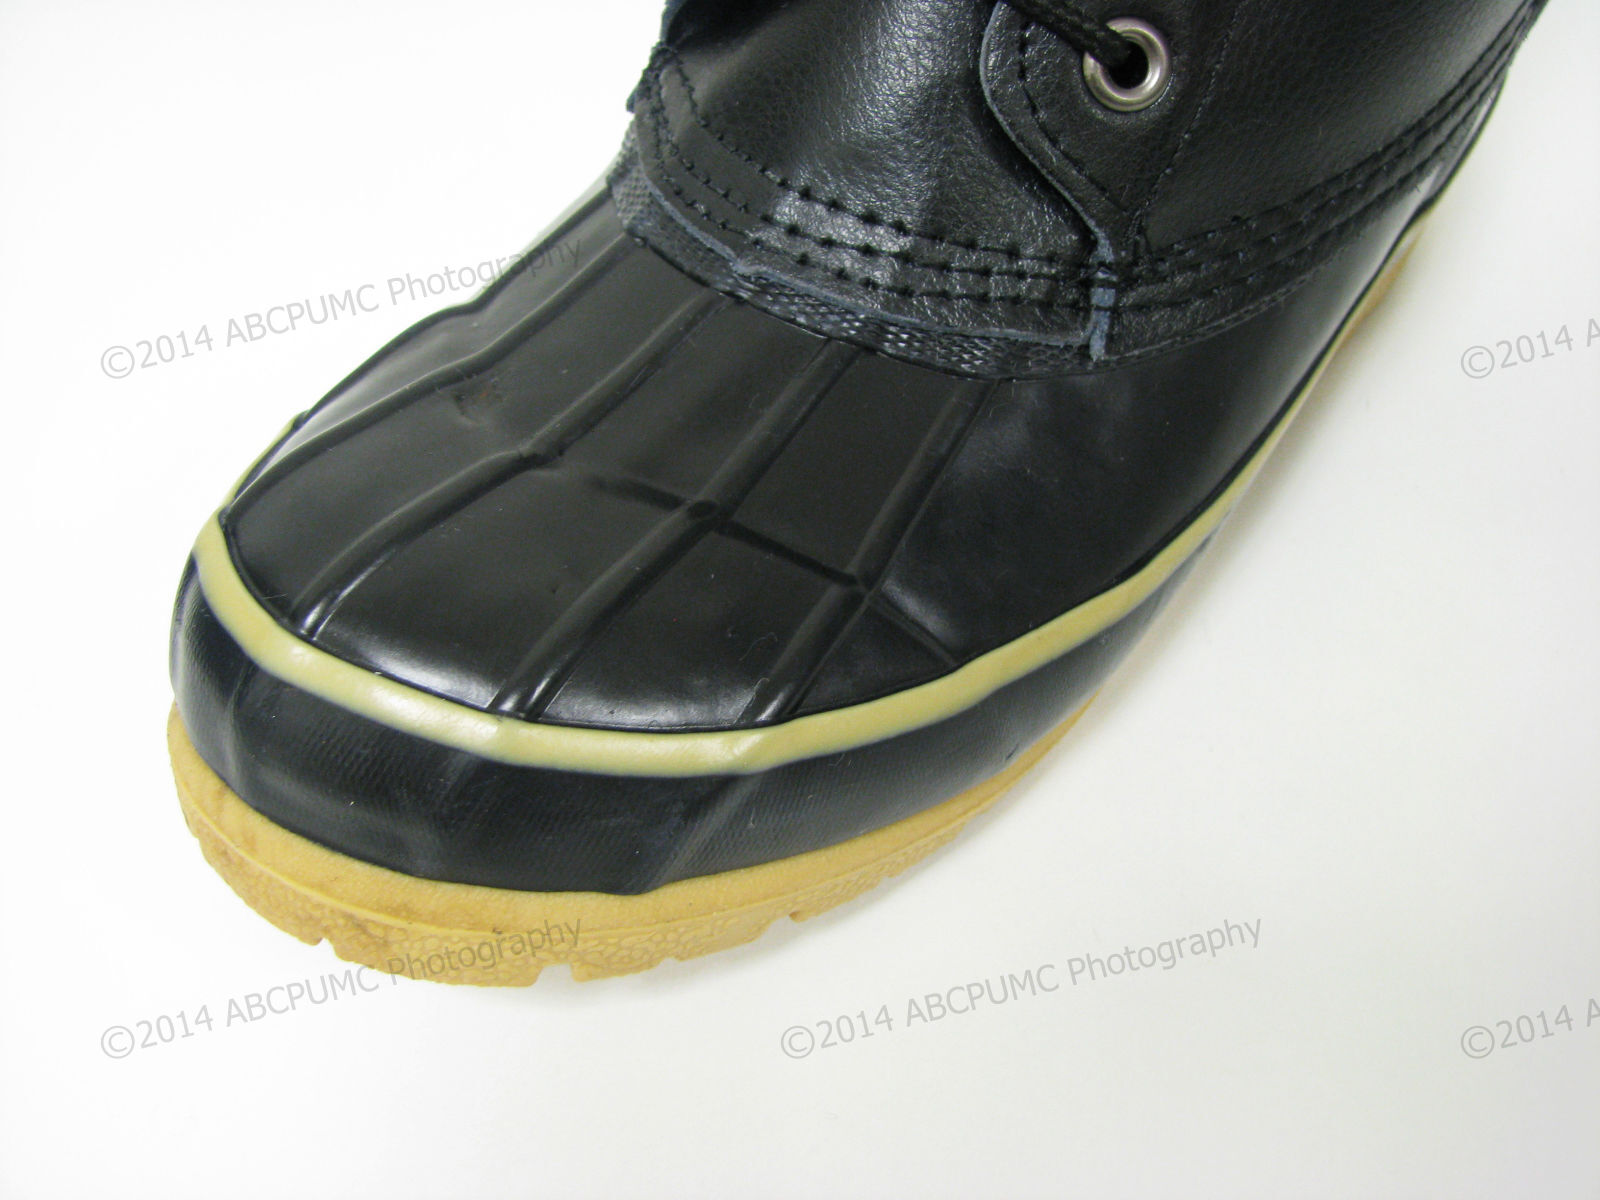 693a65188 Men's Duck Boots Leather Black Thermolite Waterproof Hiking Winter, Sizes:  6-13